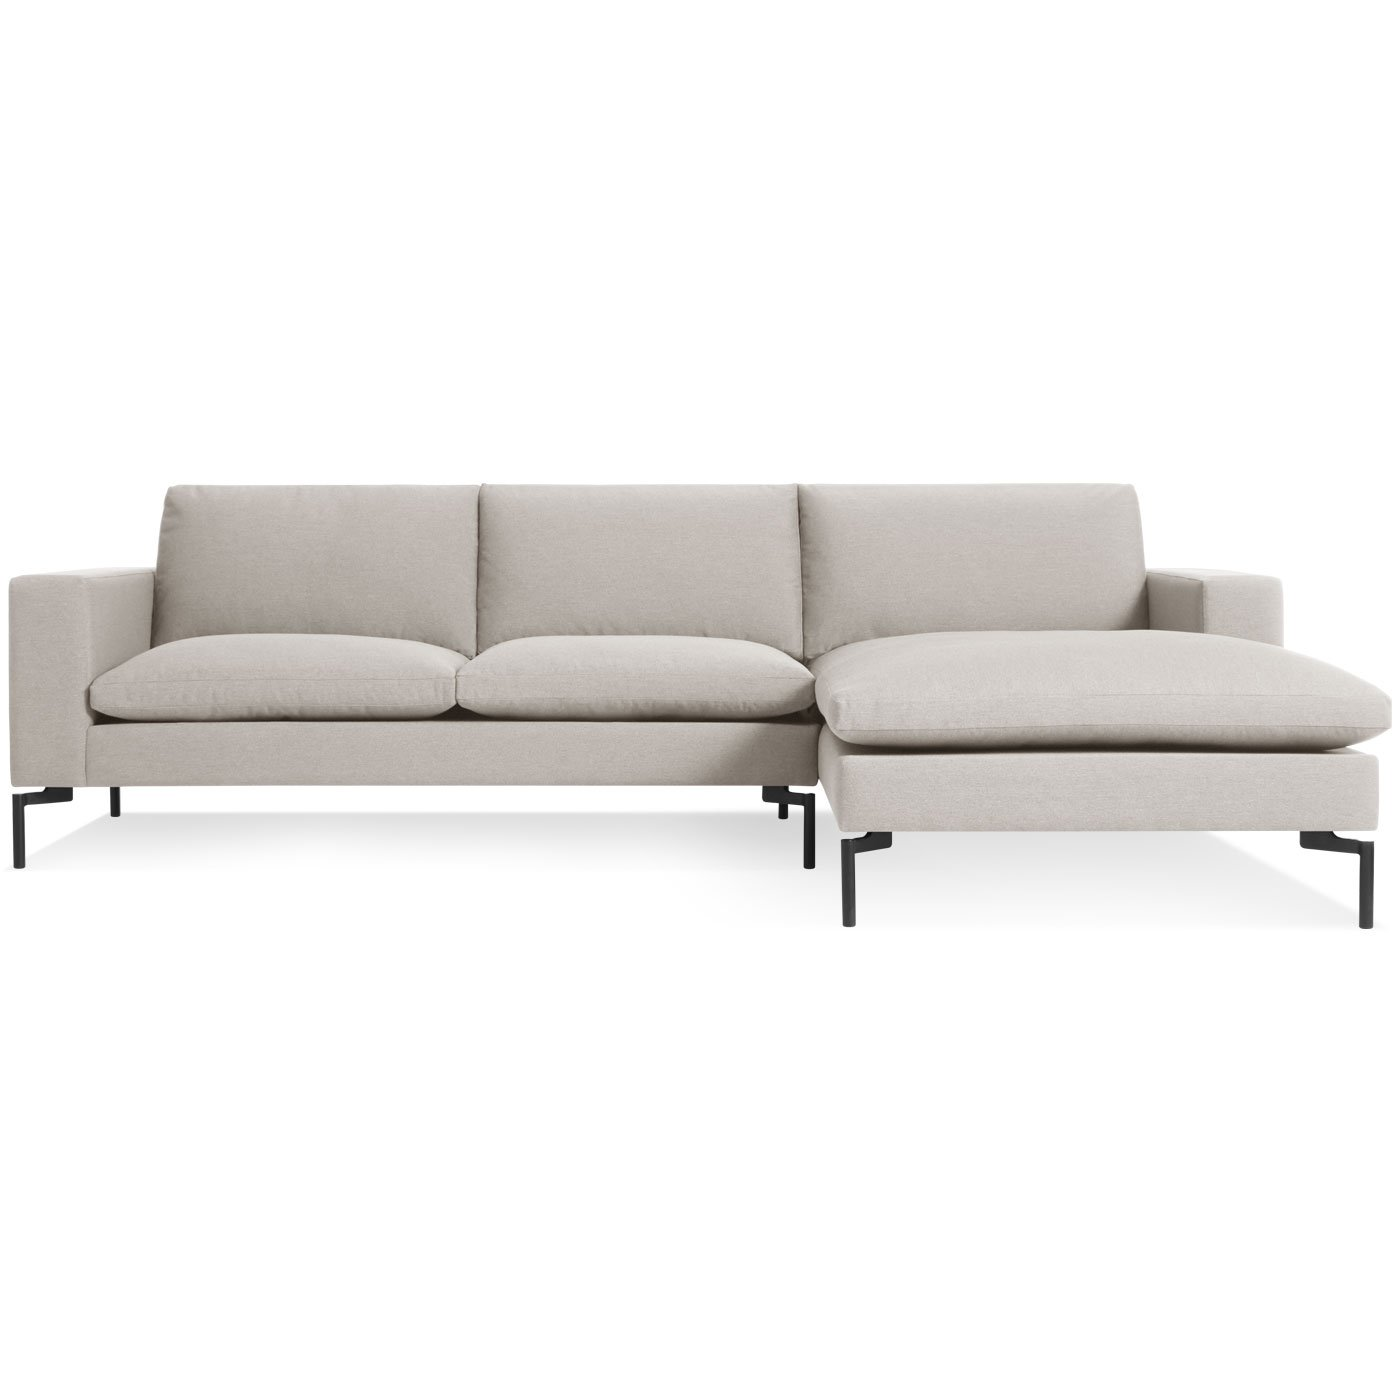 New Standard Sofa w/ Chaise